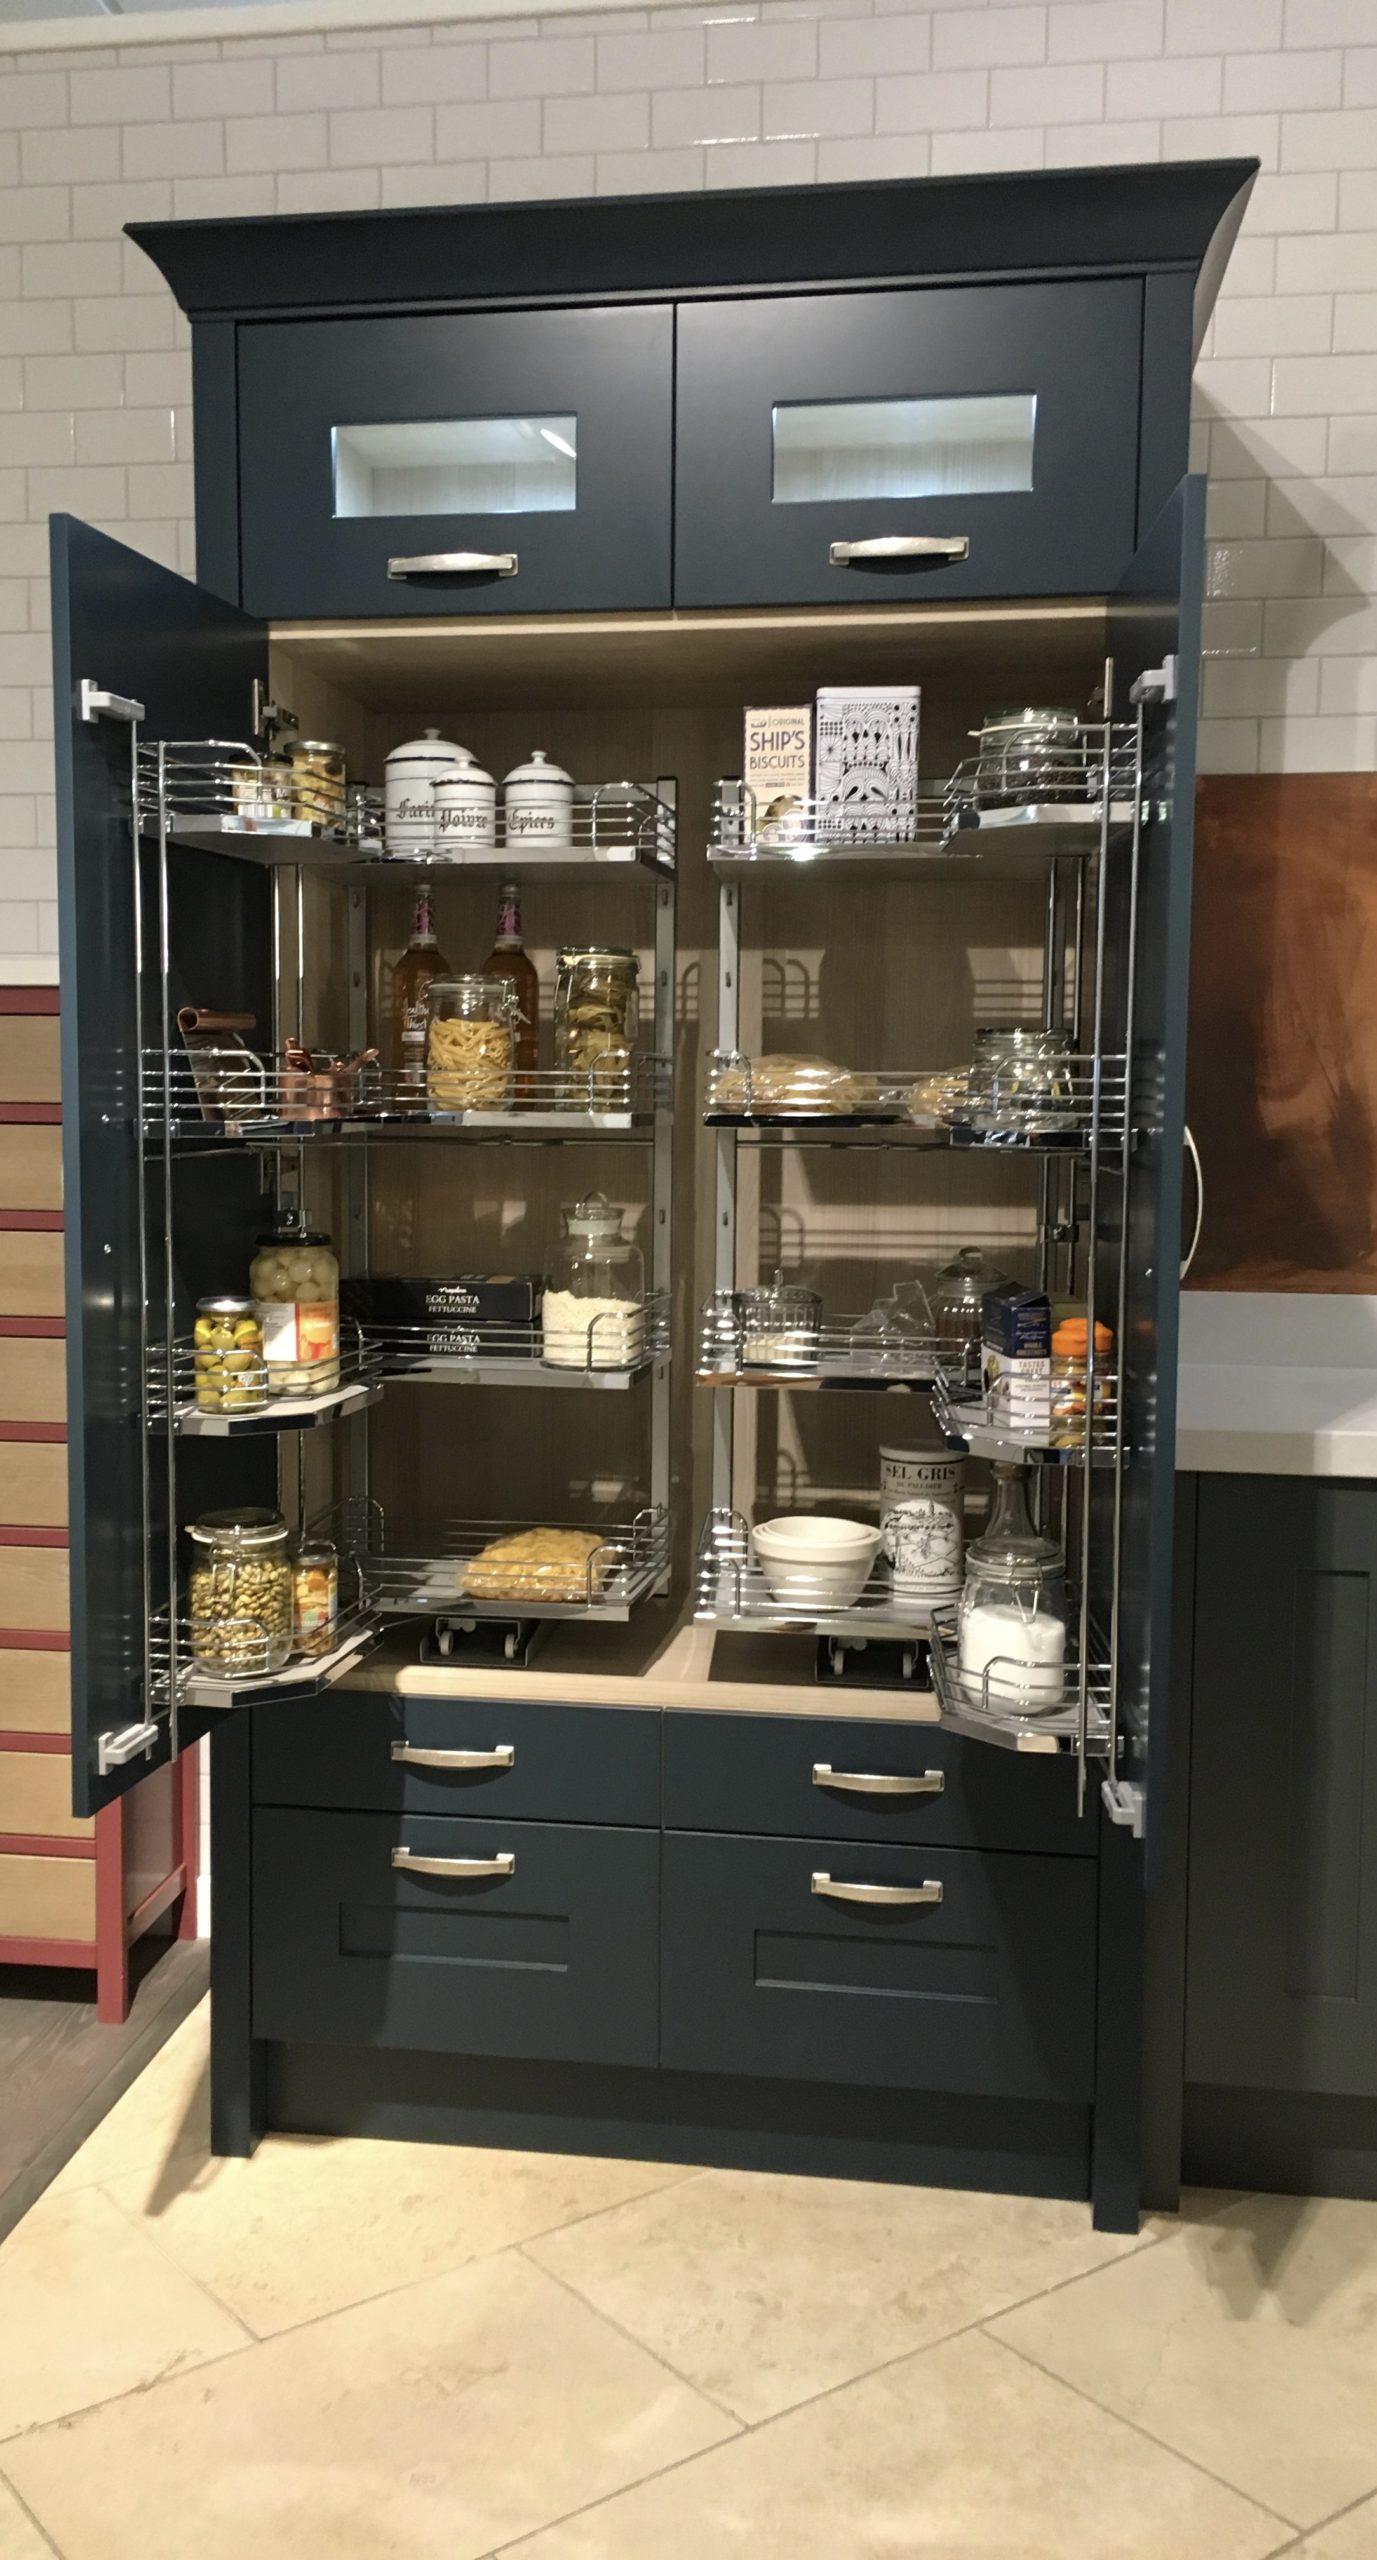 A traditional larder with more practical pull out shelving